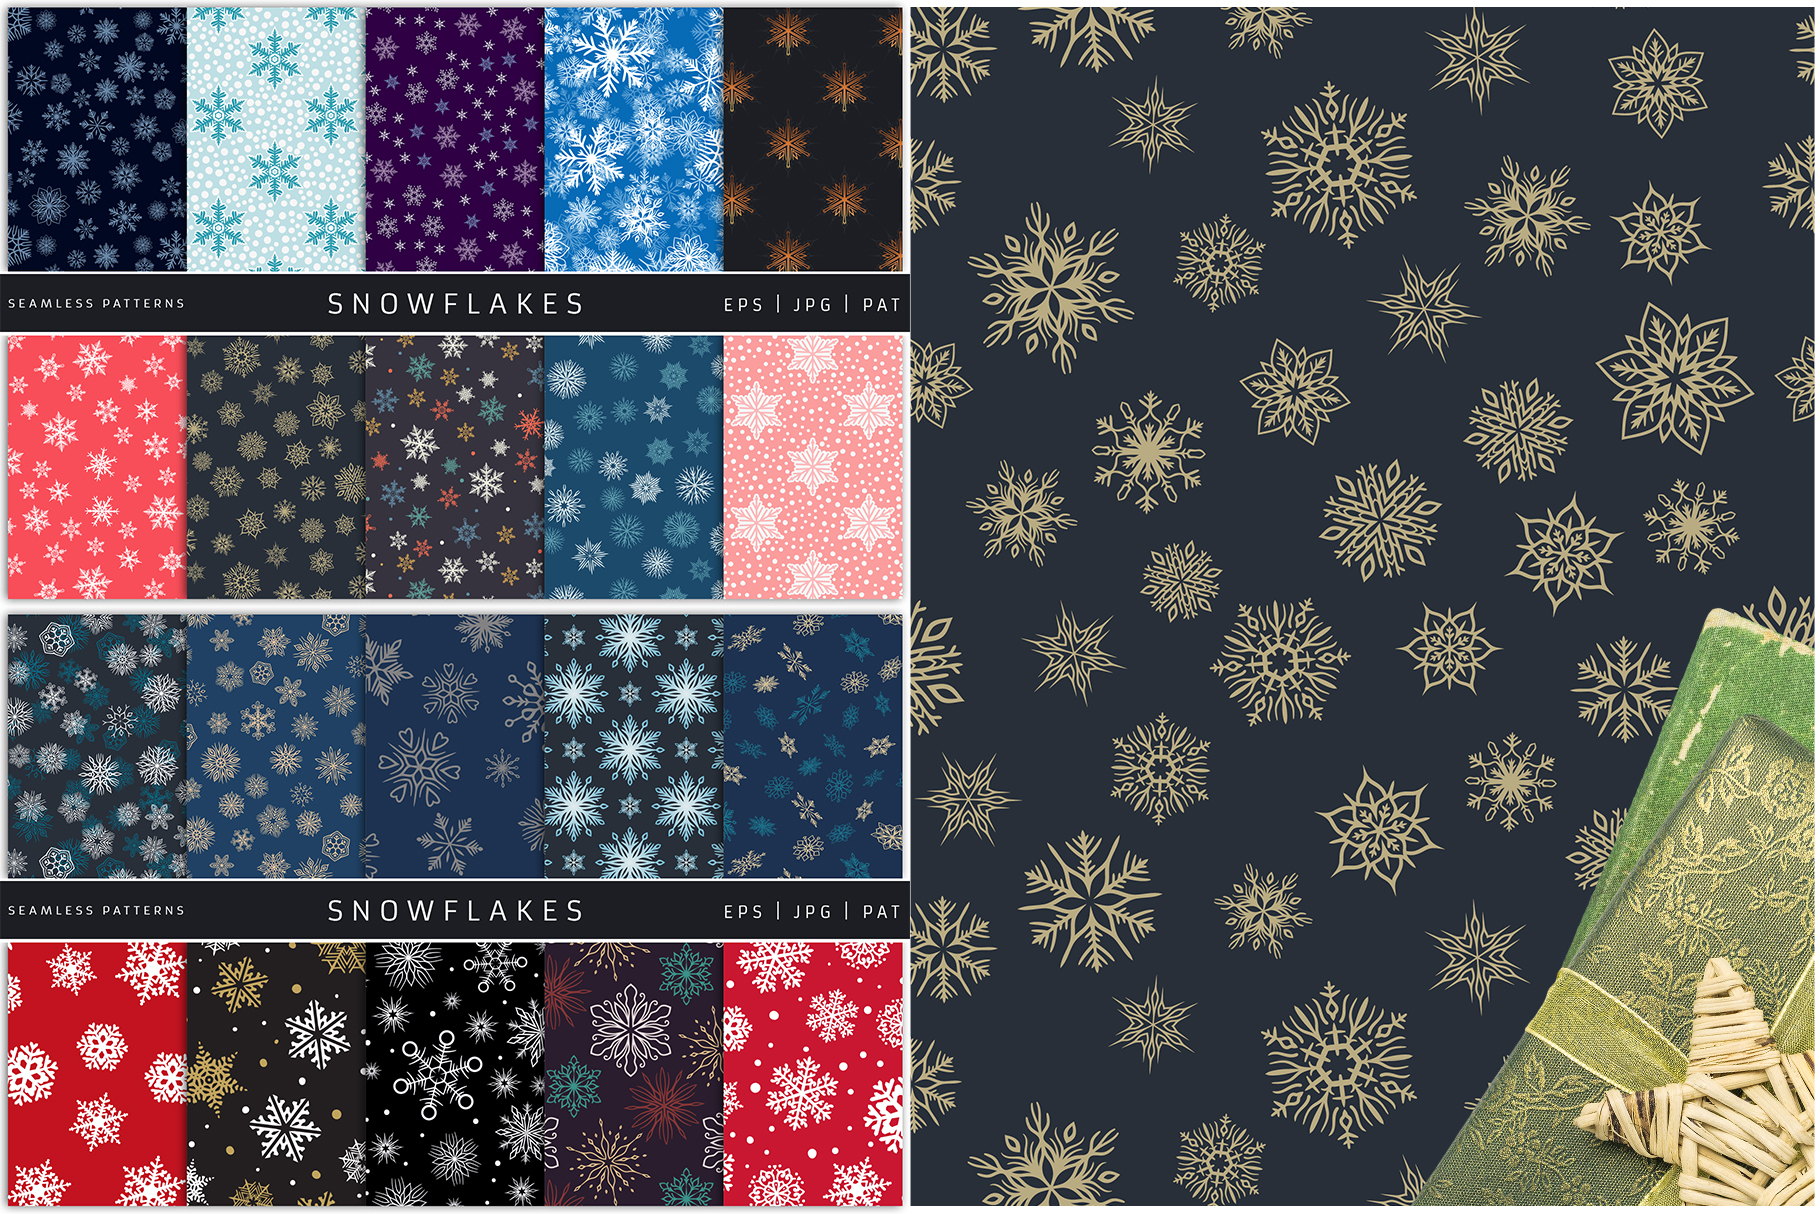 100 Seamless Patterns Vol.4 Christmas example image 8